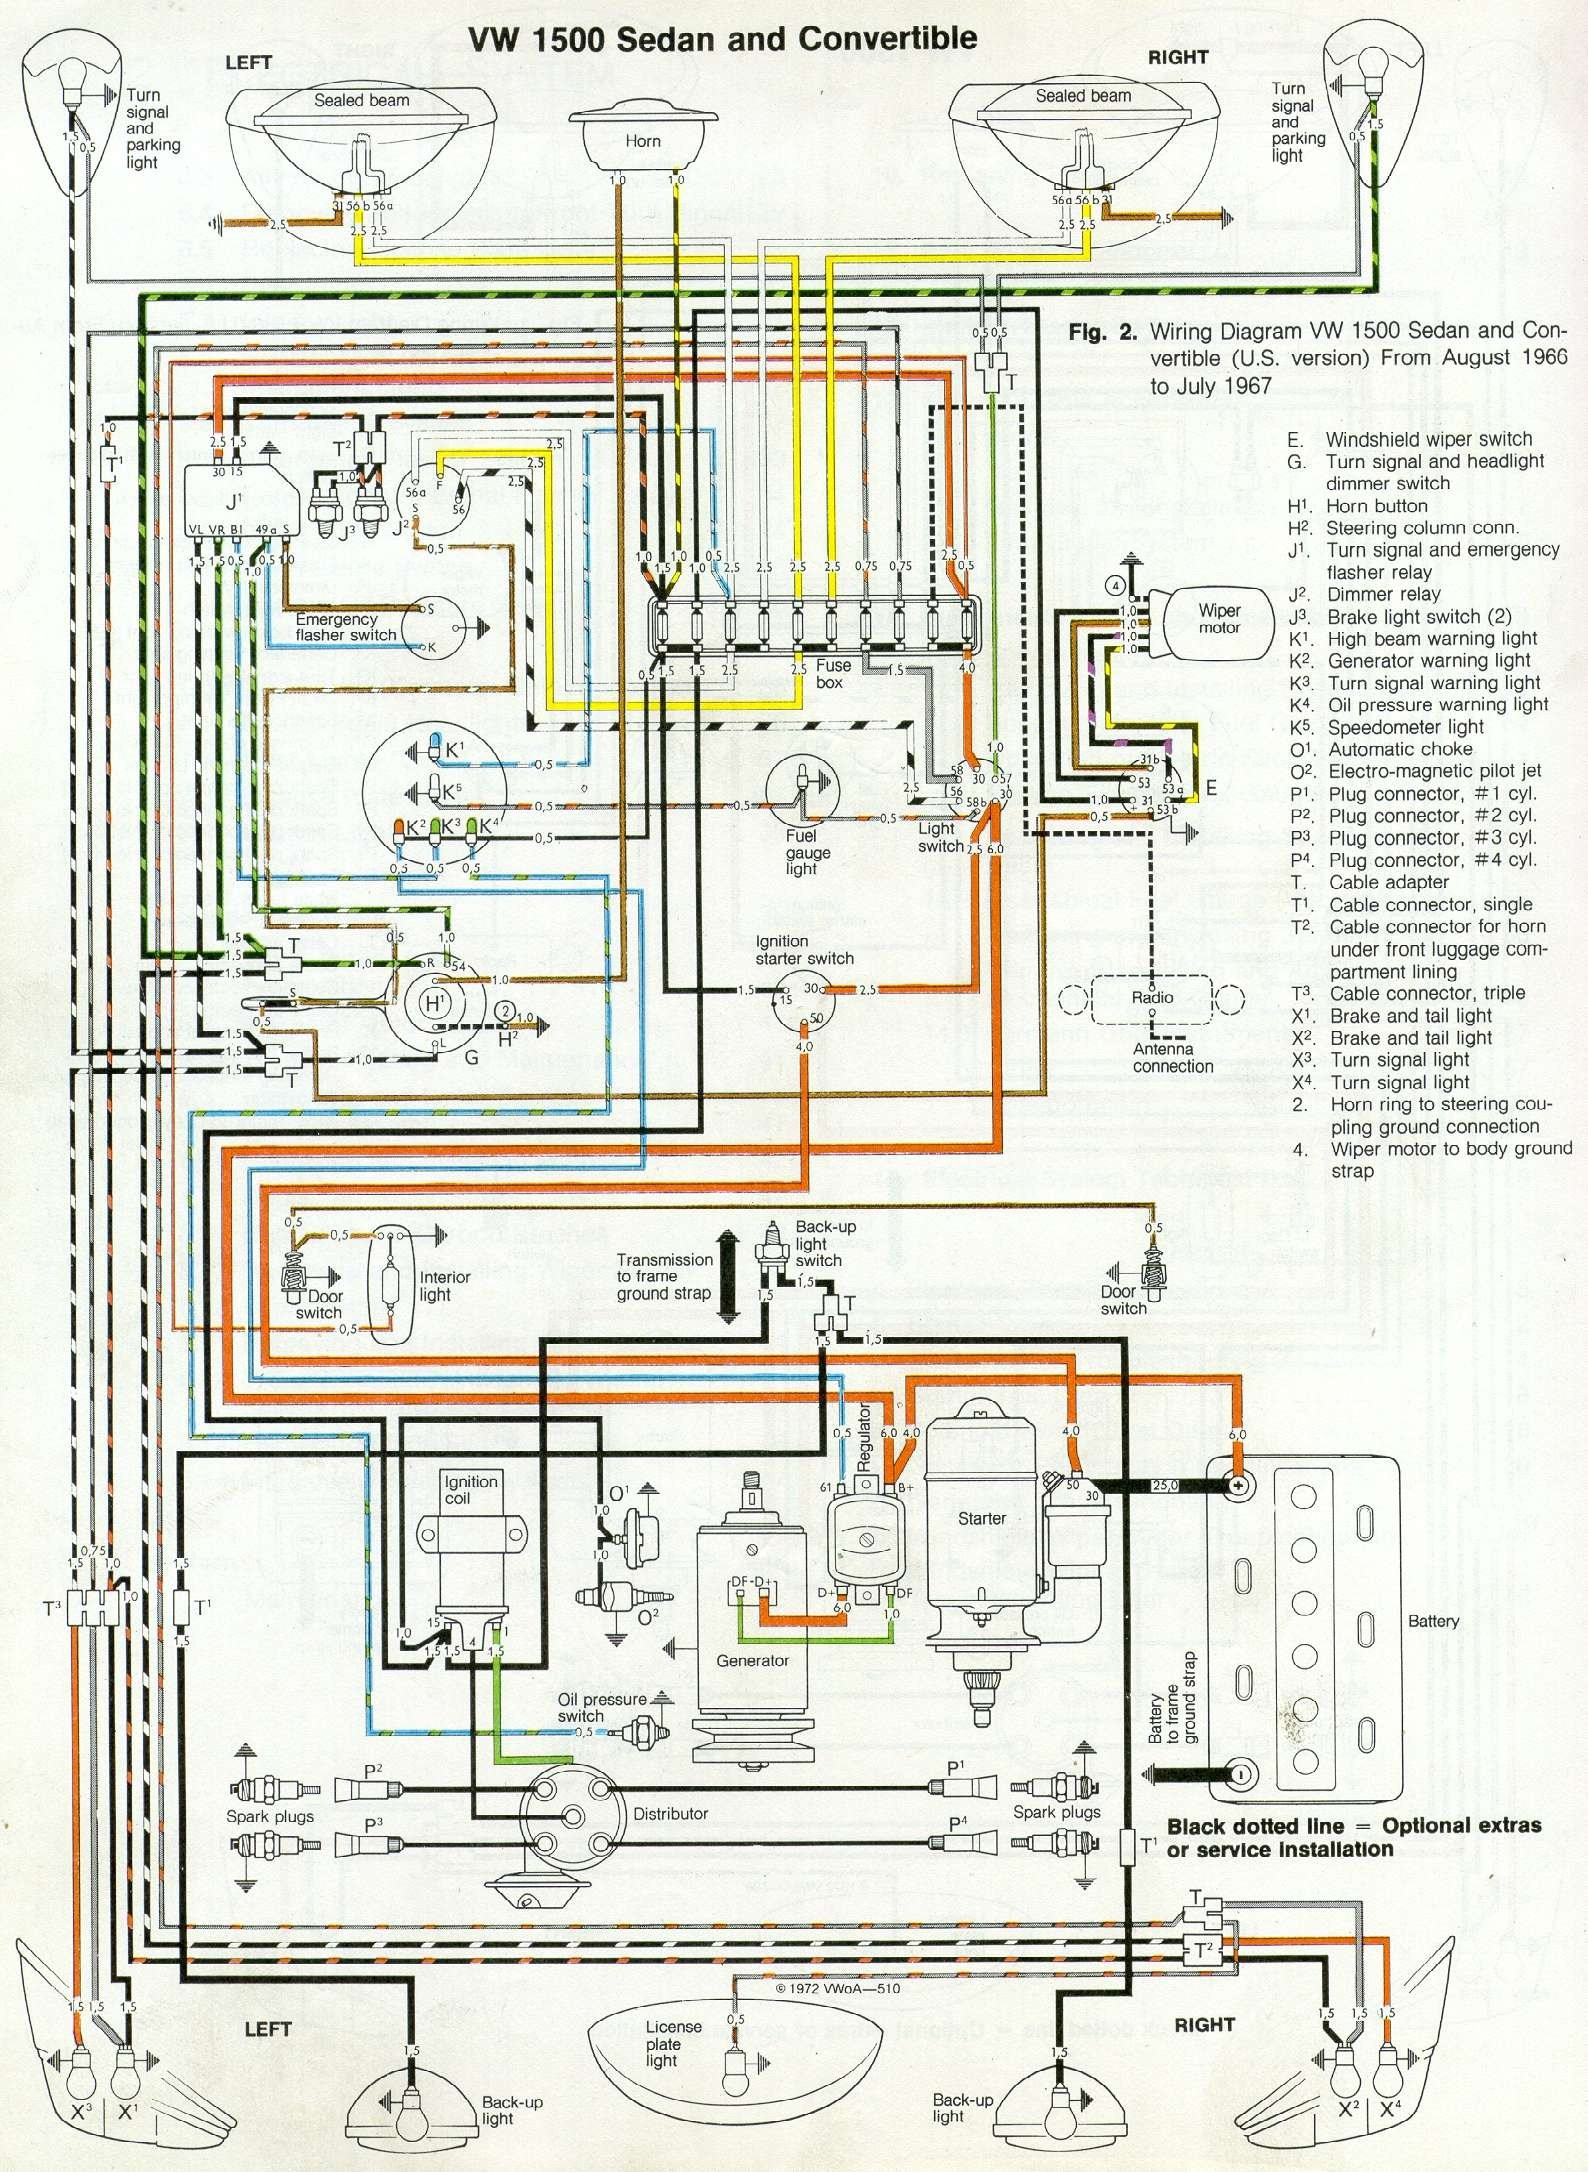 VW Beetle Wiring Digram 67 beetle wiring diagram u s version 1967 vw beetle vw bug wiring diagram at readyjetset.co